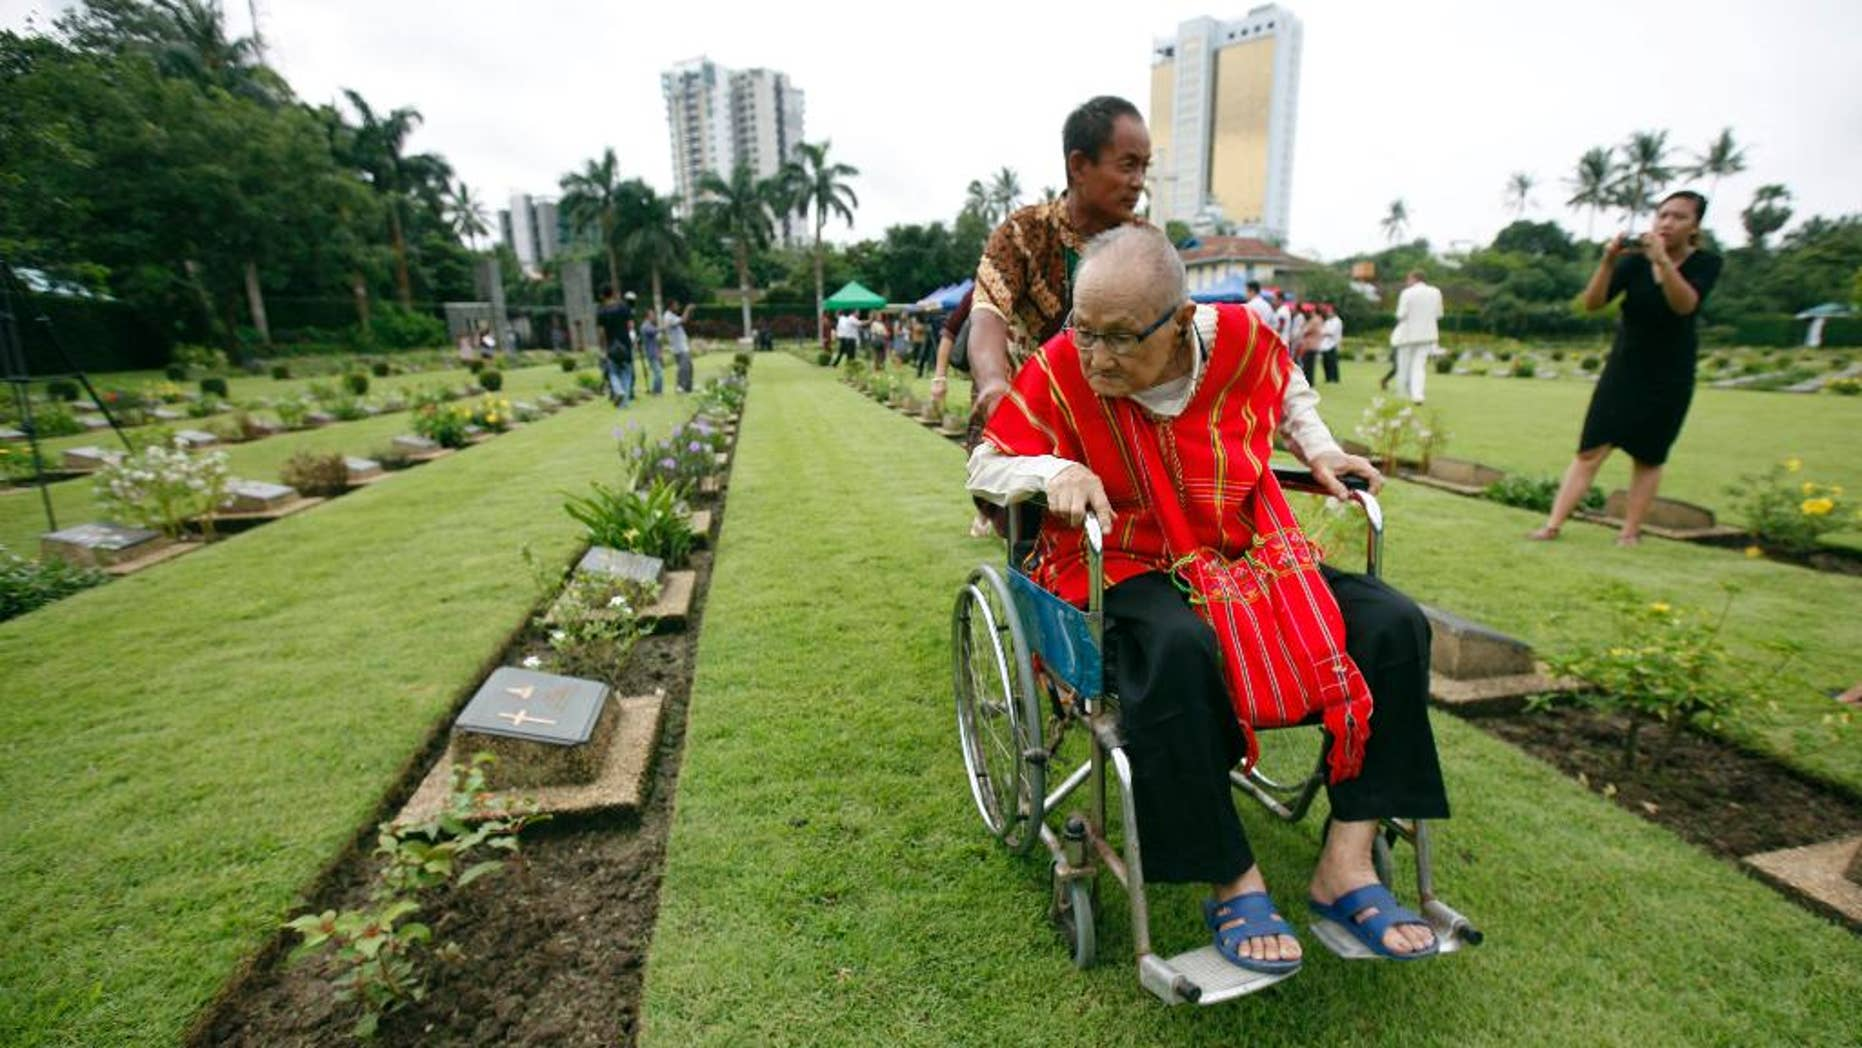 World War II veteran Saw Berny, who is ethnic Karen, looks at a gravestone as he attends a ceremony to mark the 70th anniversary of the end of World War II at Hanthawaddy War Cemetery in Yangon, Myanmar, Saturday, Aug. 15, 2015. Karen fought courageously behind Japanese lines with Seagrim, a lanky, eccentric and exceptional guerrilla leader. (AP Photo/Khin Maung Win)